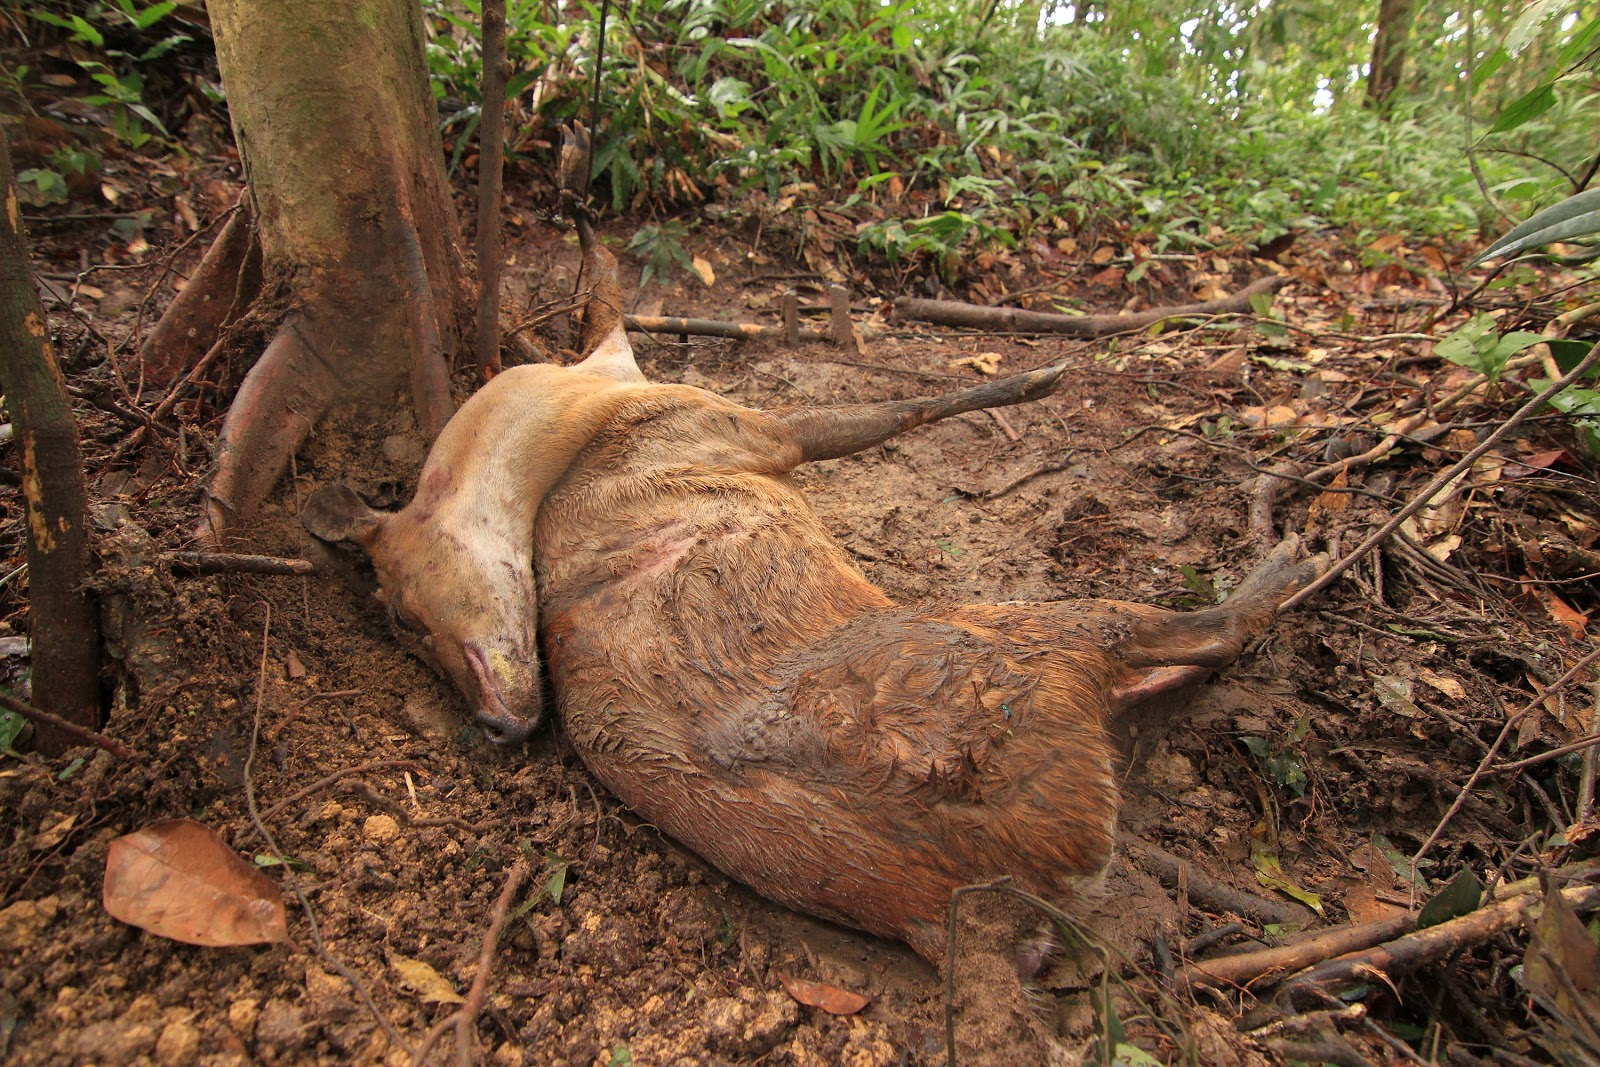 A Southern red muntjac killed in a snare in Malaysia. © Lau Ching Fong / WWF-Malaysia